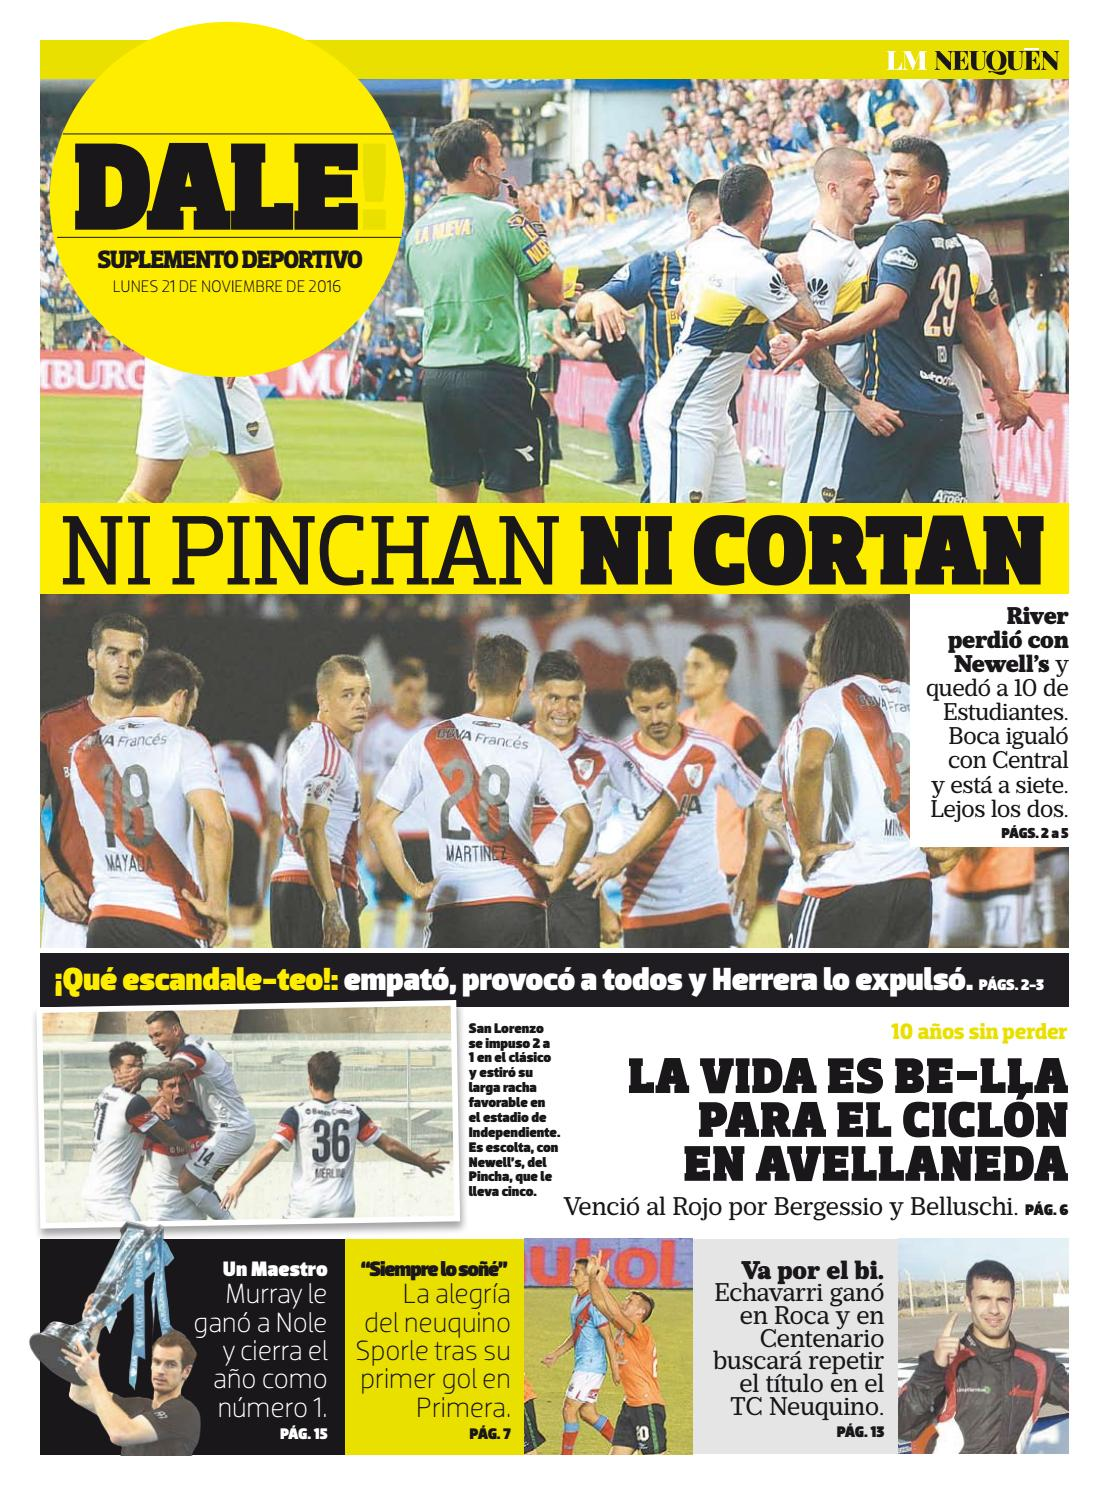 Suplemento dale 2016 11 21 by Diario LM Neuquén - issuu